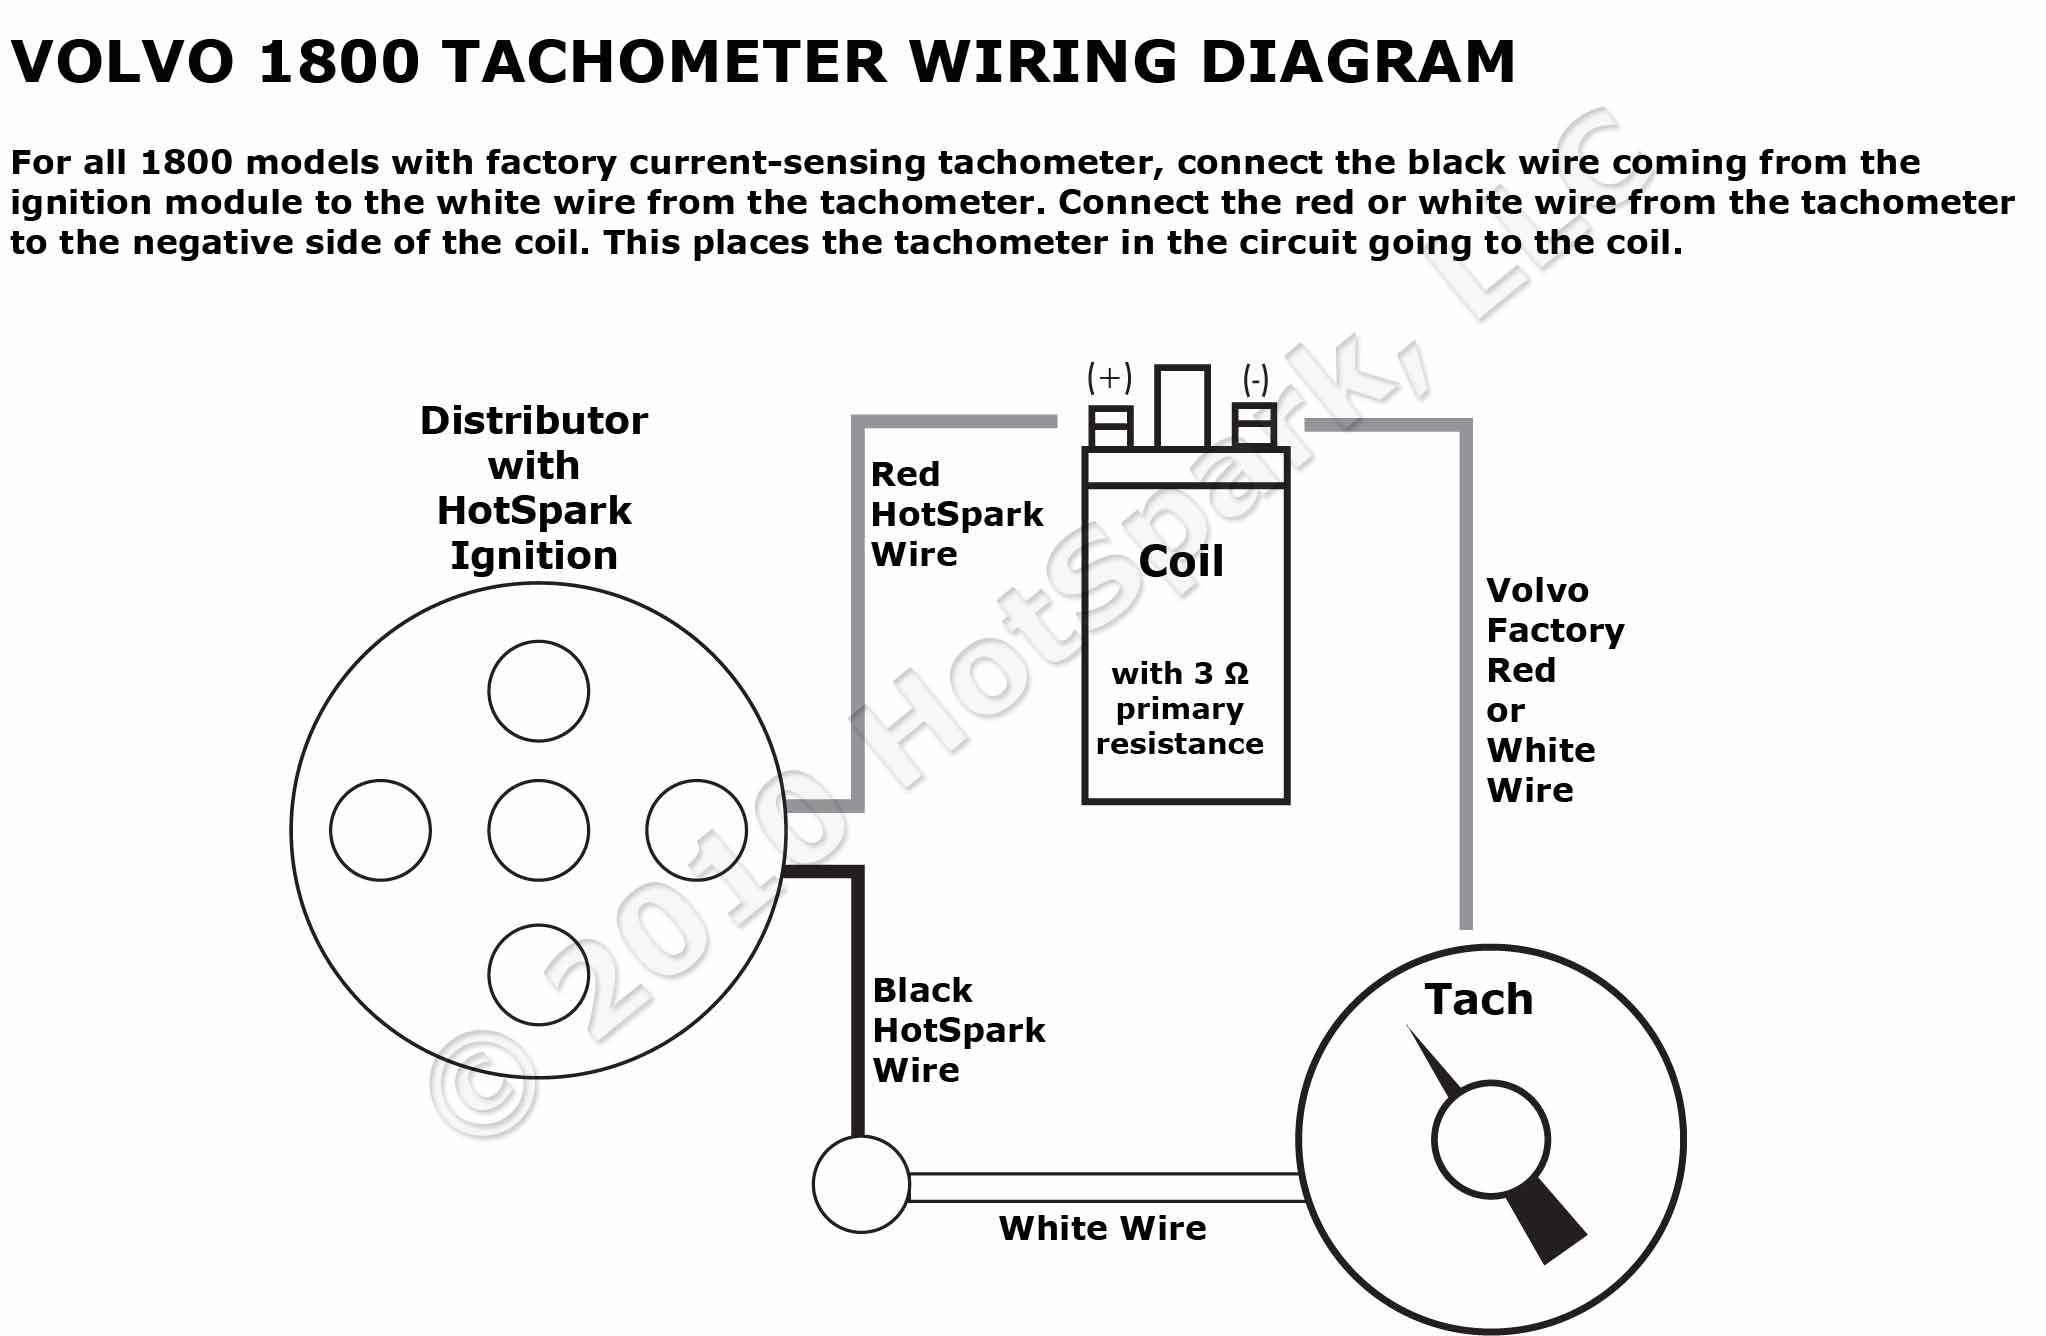 Volvo 1800 Tachometer and Hot Spark Wiring Diagram volvo 1800 tachometer wiring diagram with hotspark ignition tachometer wiring diagram at webbmarketing.co